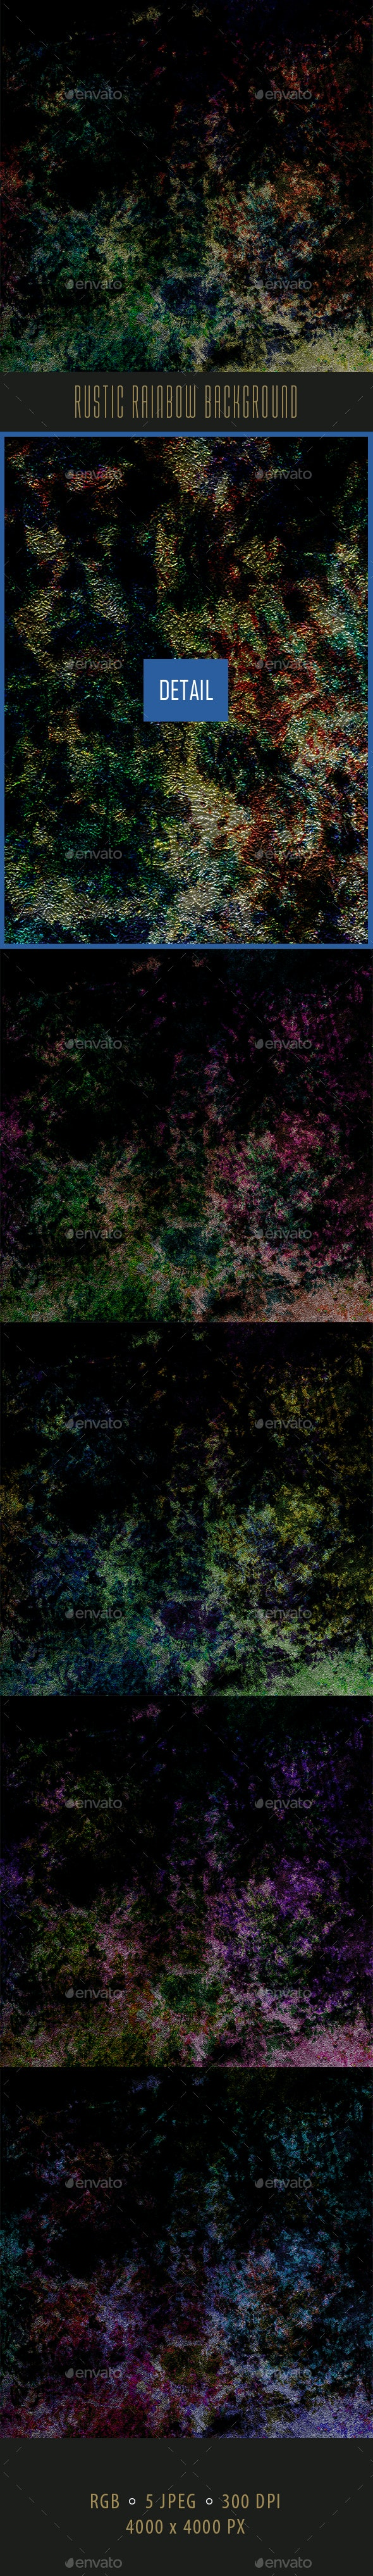 Rustic Rainbow Background - Abstract Backgrounds